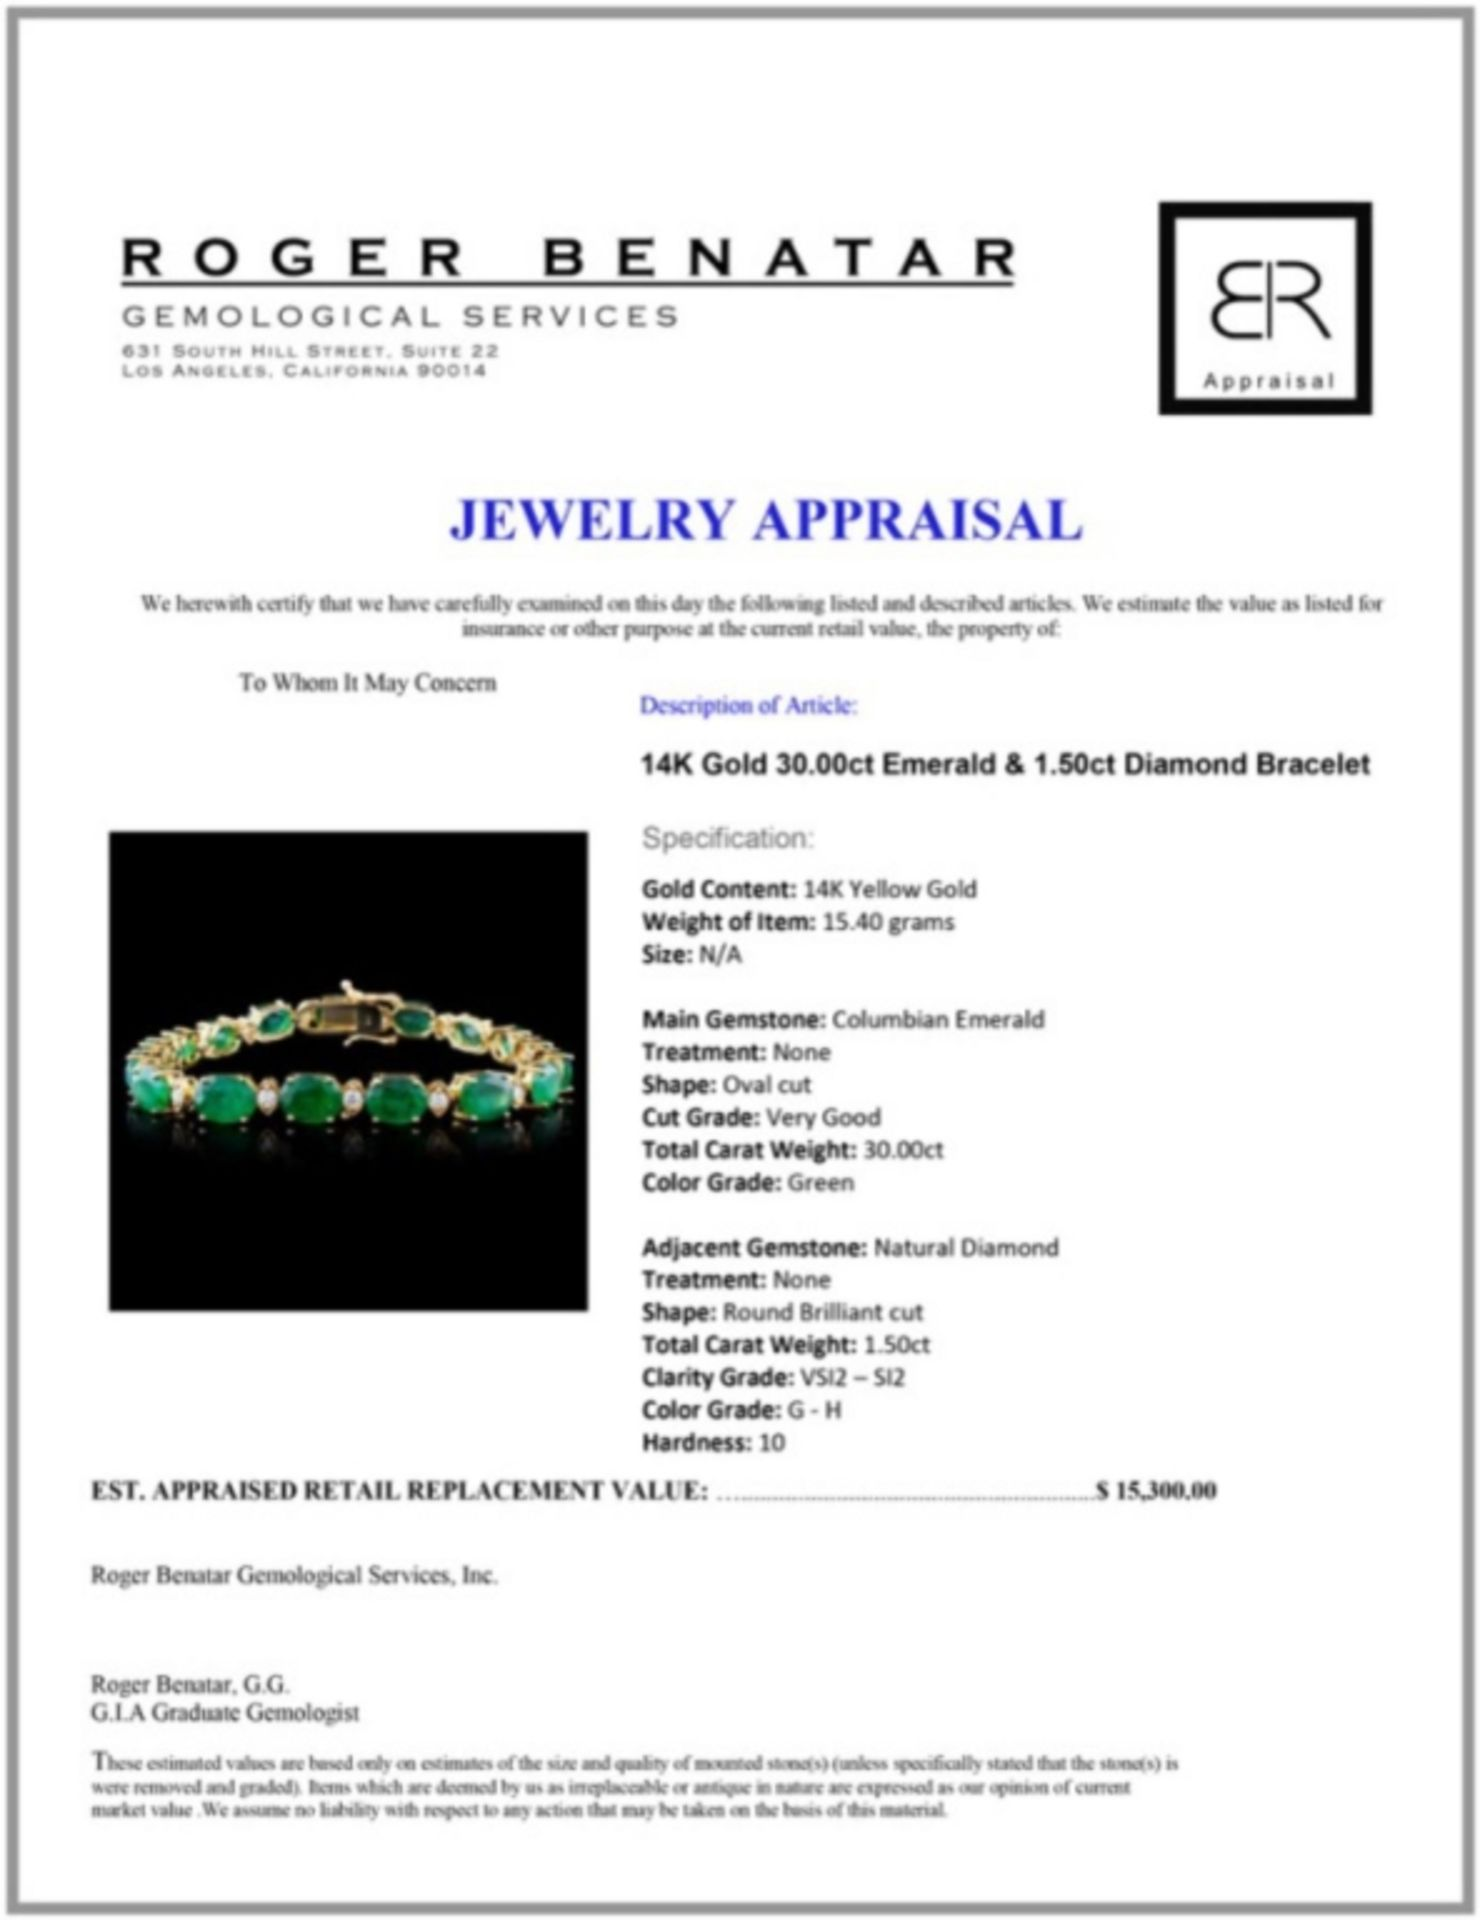 14K Gold 30.00ct Emerald & 1.50ct Diamond Bracelet - Image 3 of 3